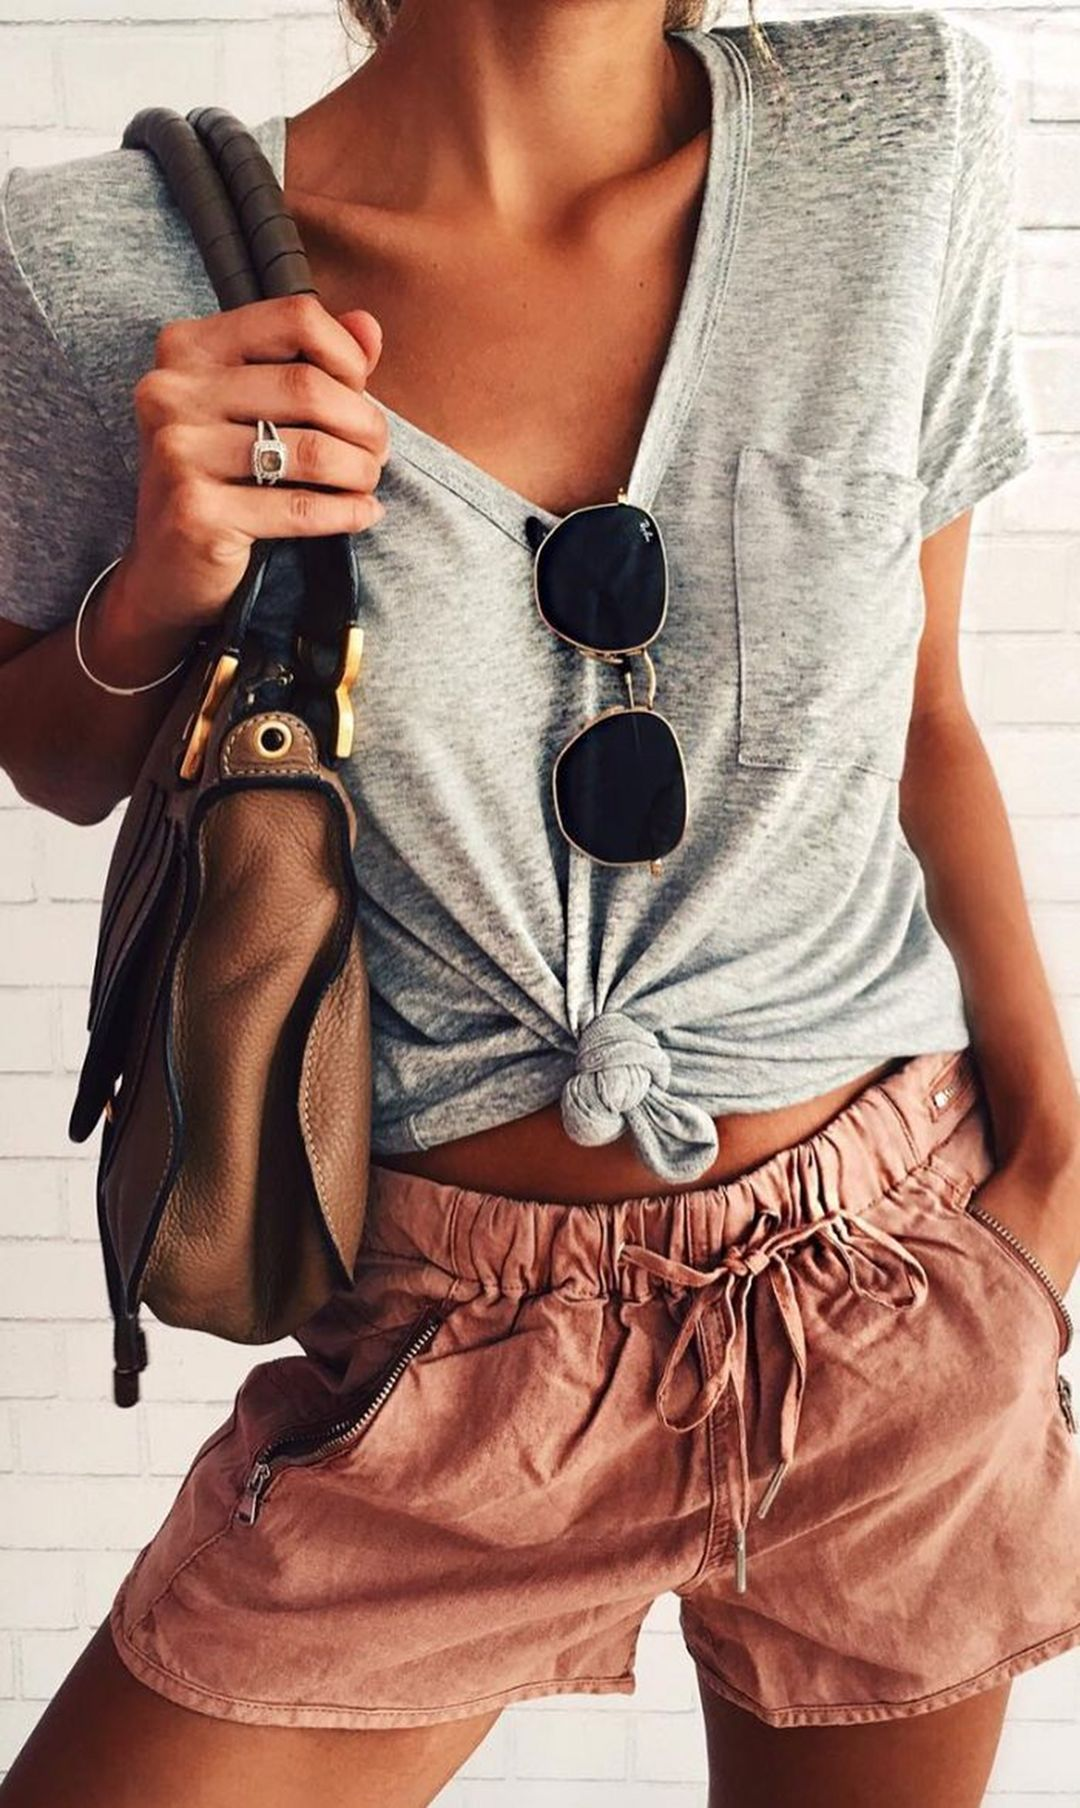 45 Cozy Summer Outfits Ideas For Women To Looks More Trendy - Fashions Nowadays